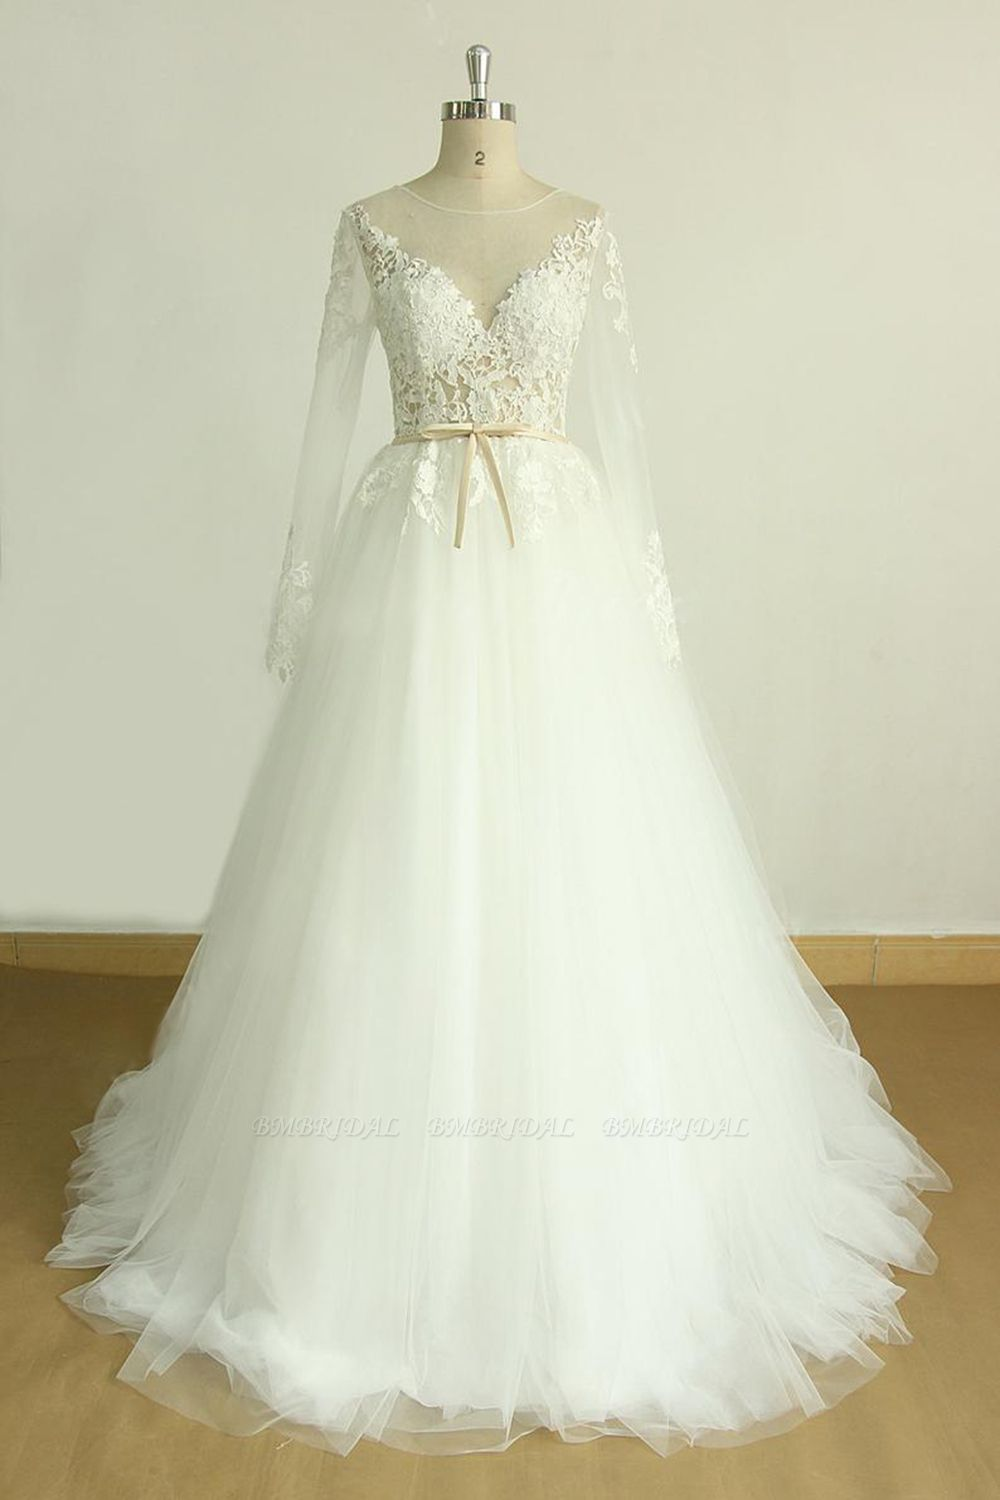 BMbridal Chic Jewel Longsleeves Tulle Wedding Dress Appliques Lace A-line Bridal Gowns On Sale